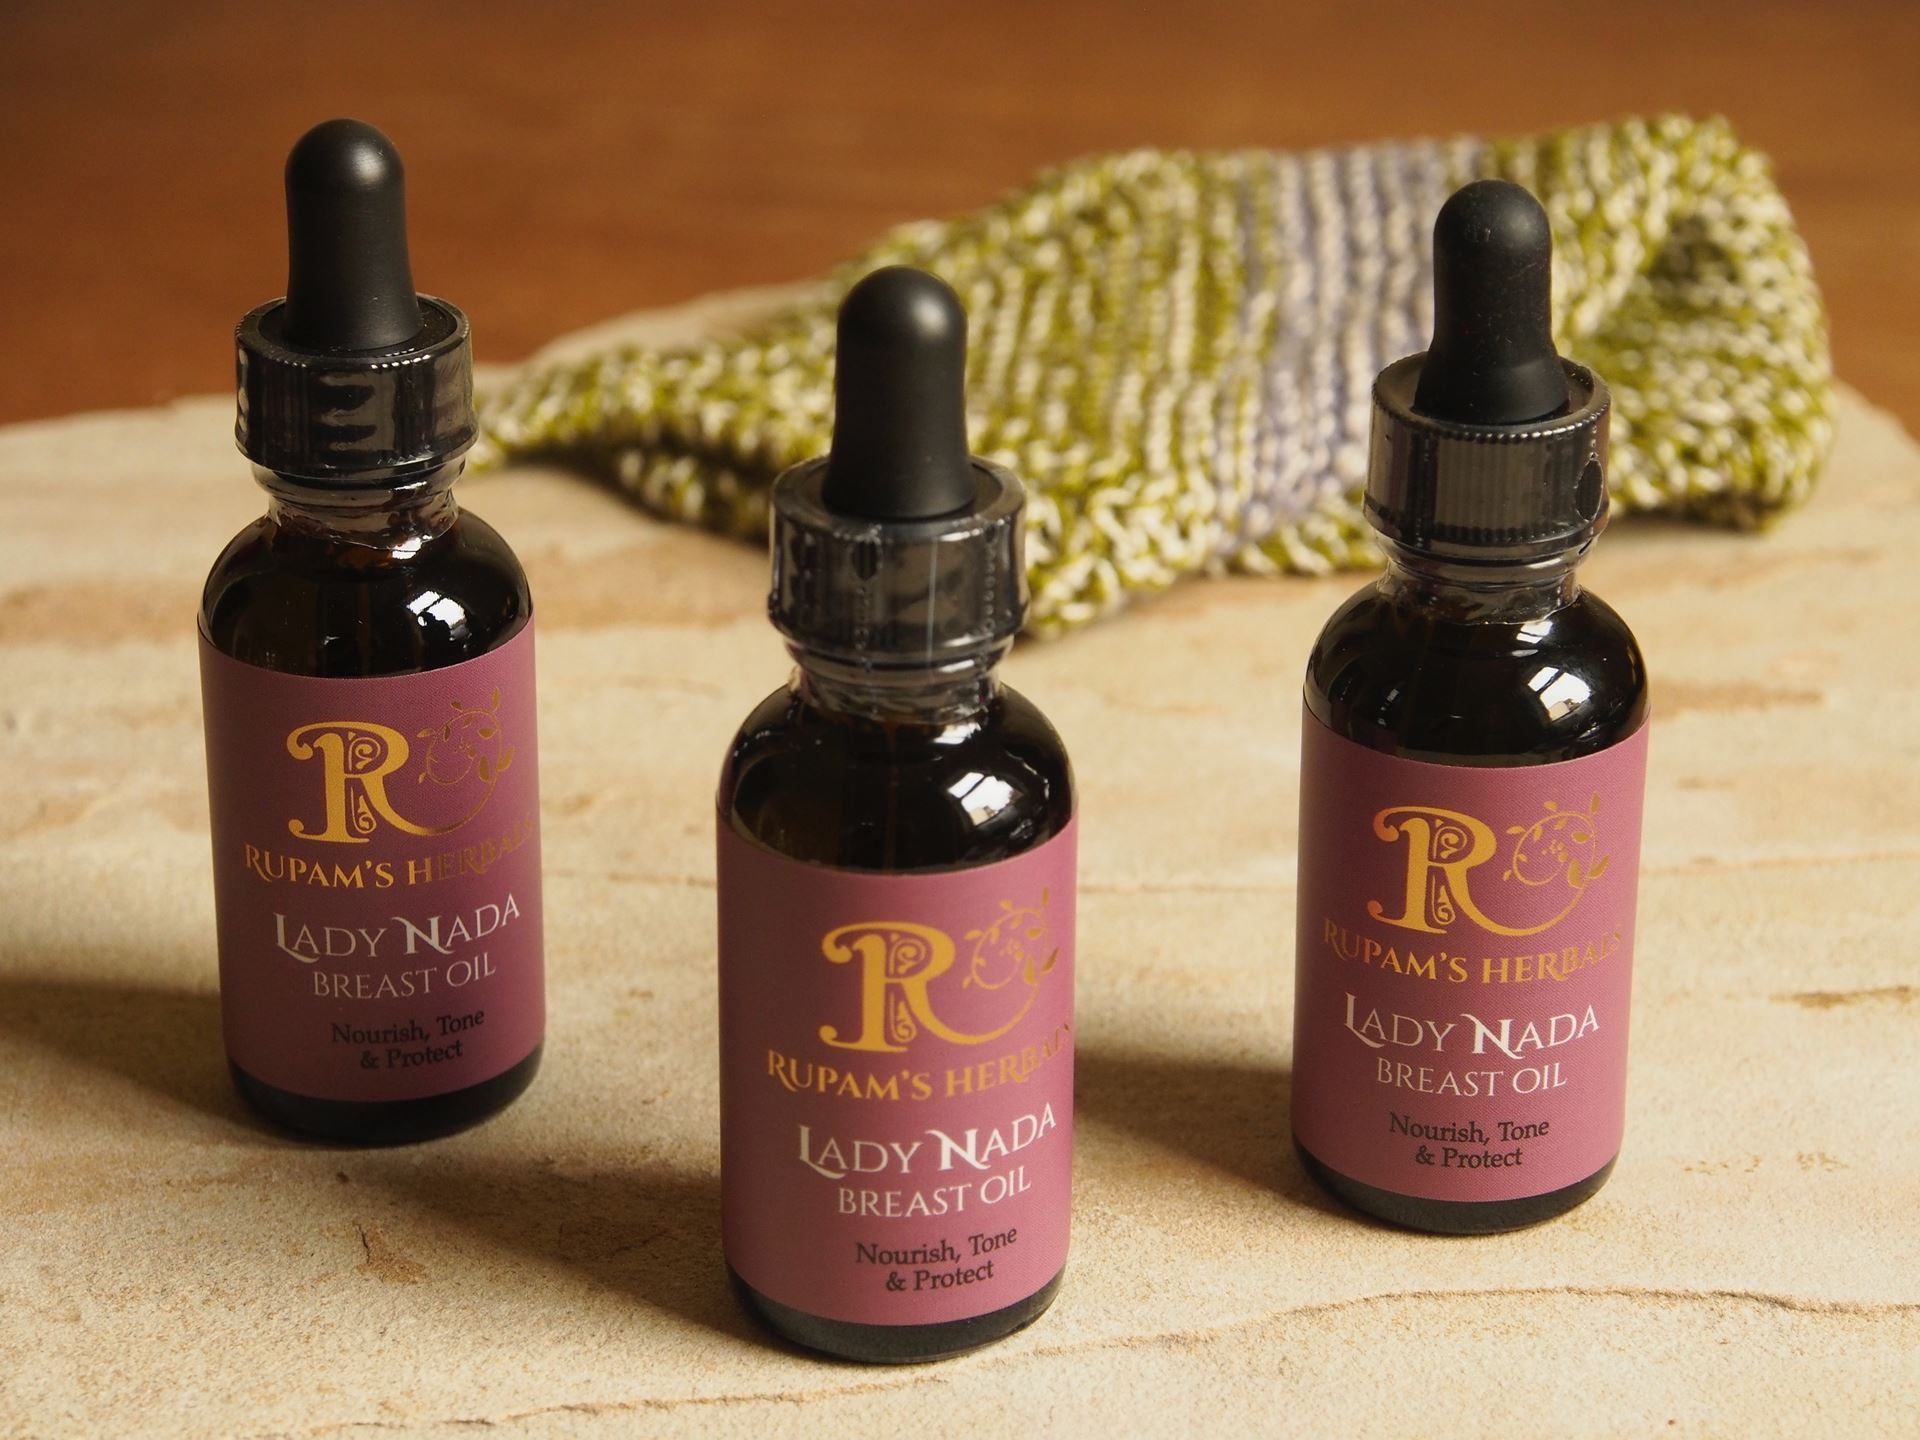 Picture of Rupam's Herbals Lady Nada's Breast Oil